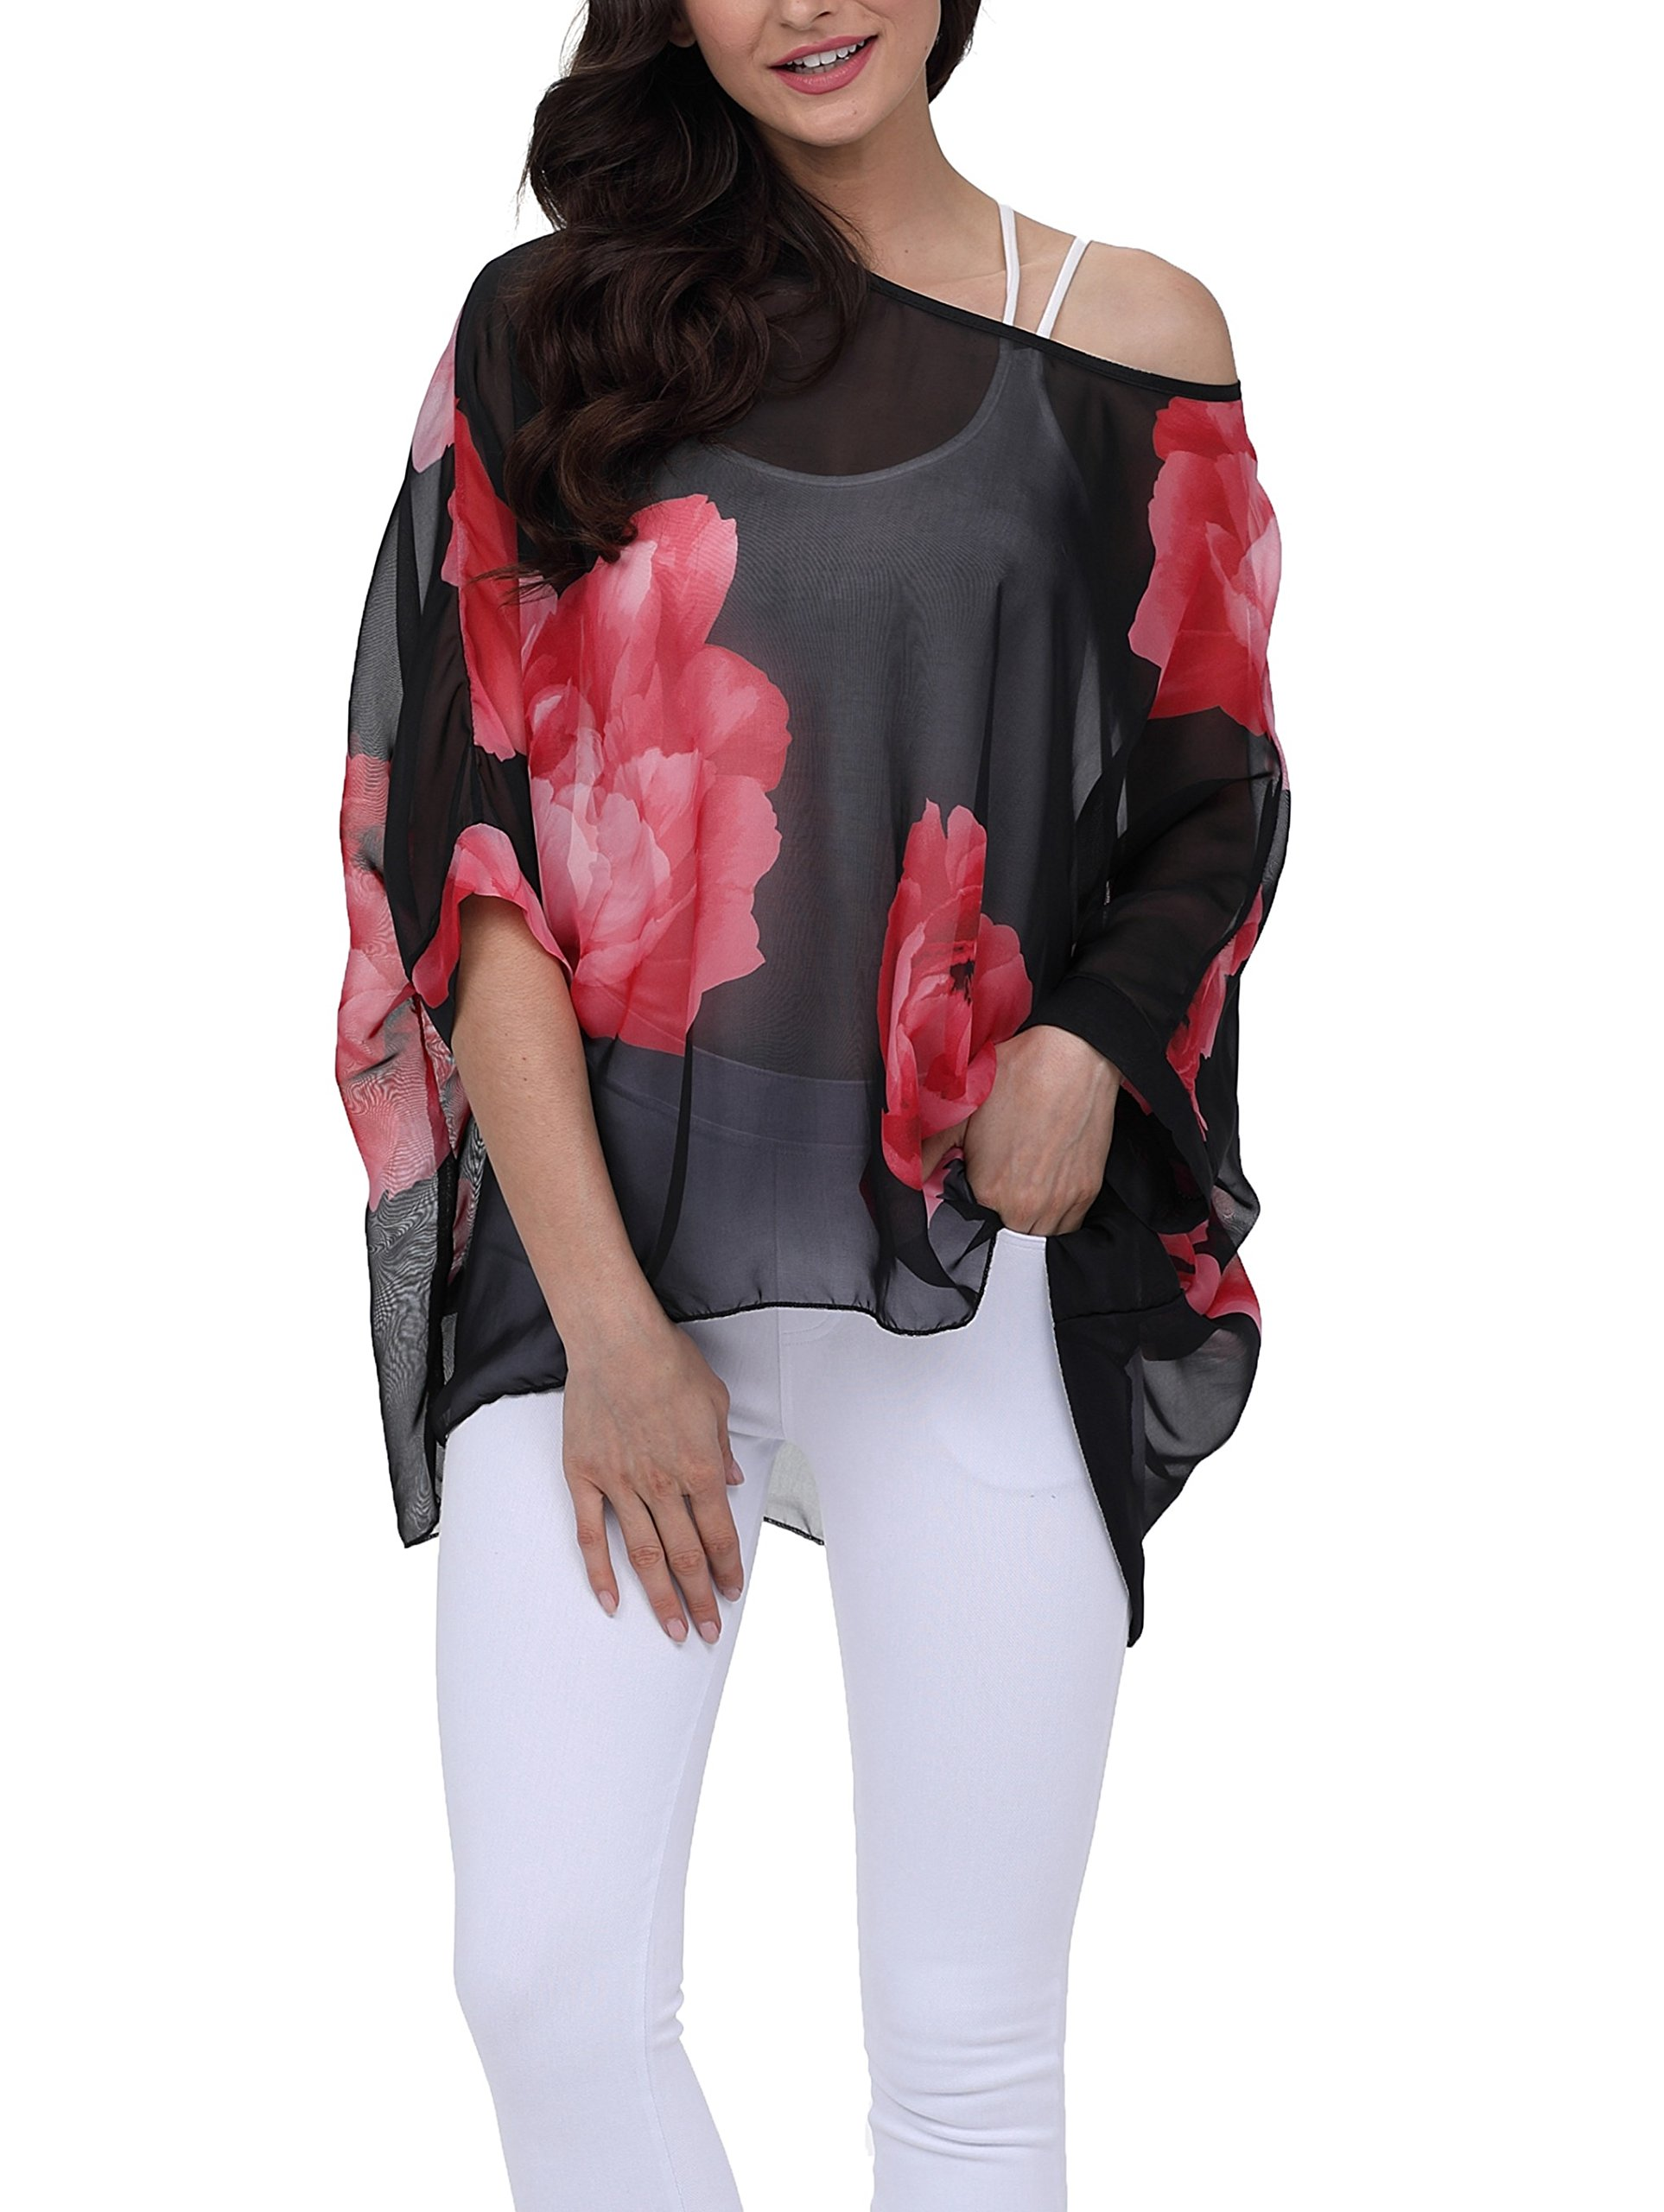 Vanbuy Women Summer Floral Printed Batwing Sleeve Top Chiffon Poncho Casual Loose Blouse Z91-4283